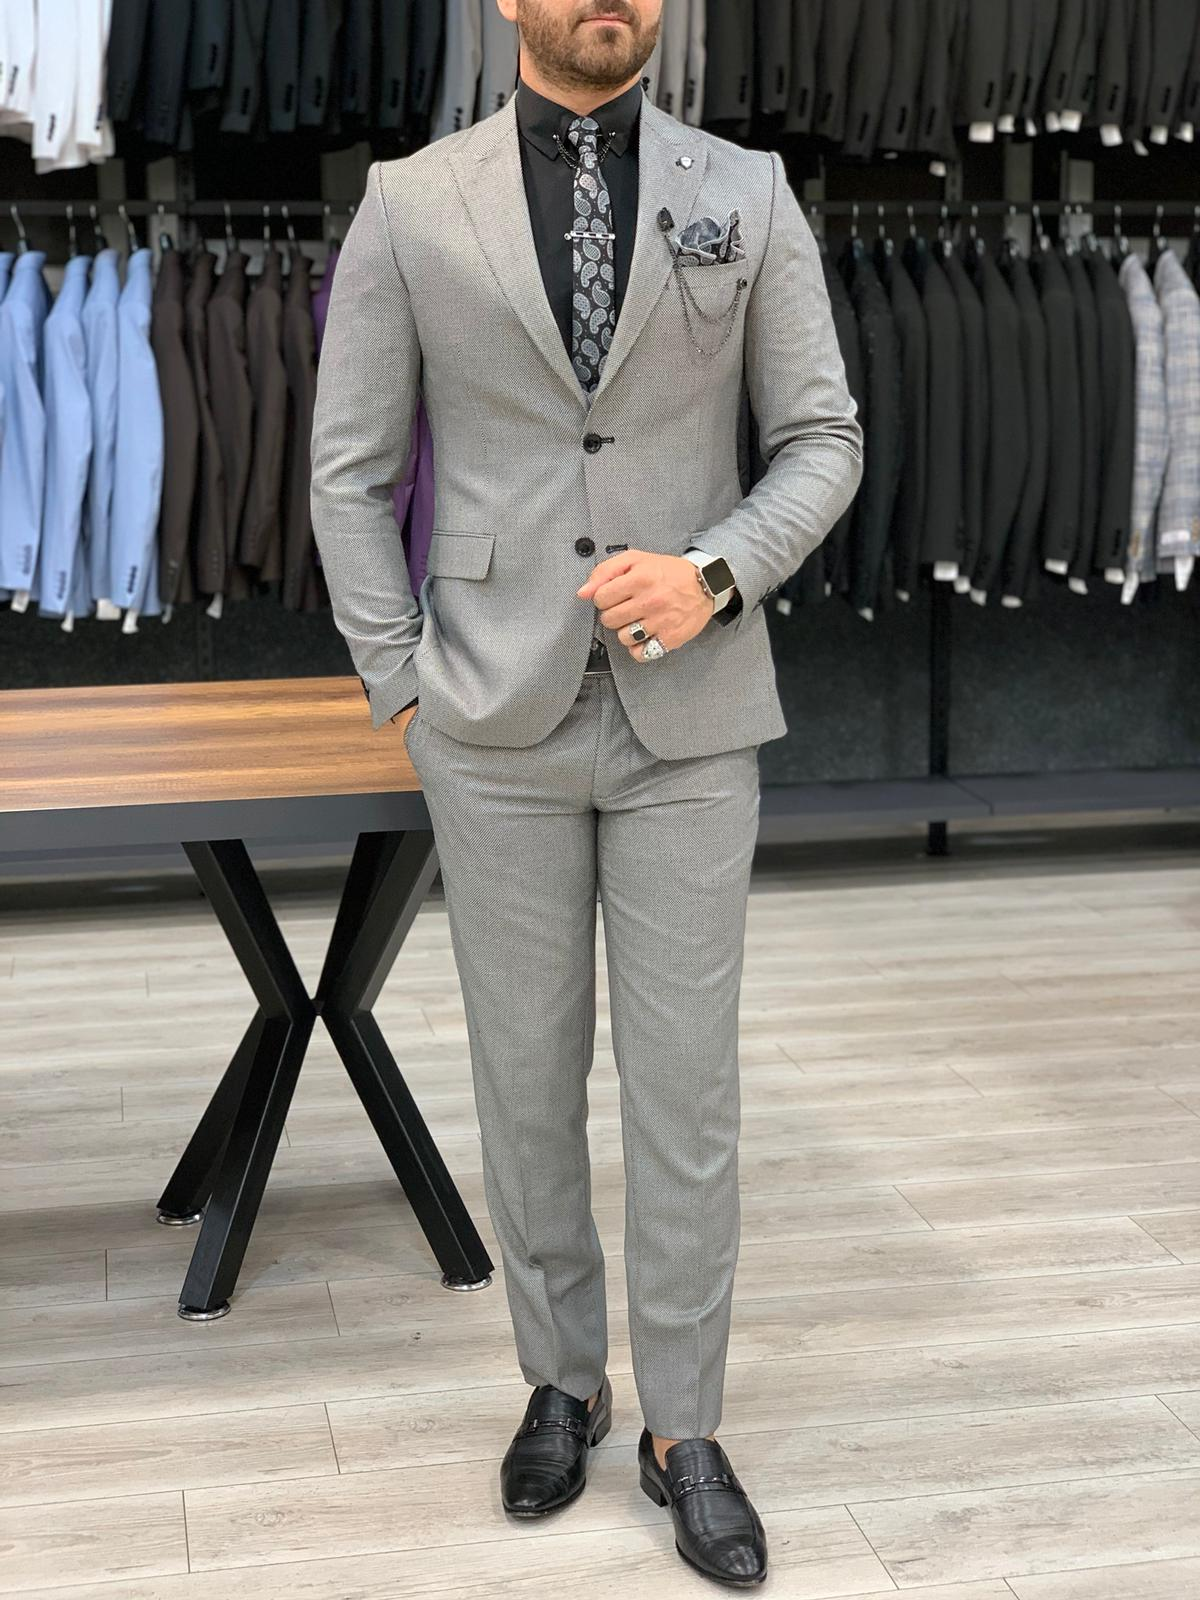 The Best Ways to Style a Gray a Suit by BespokeDaily Blog